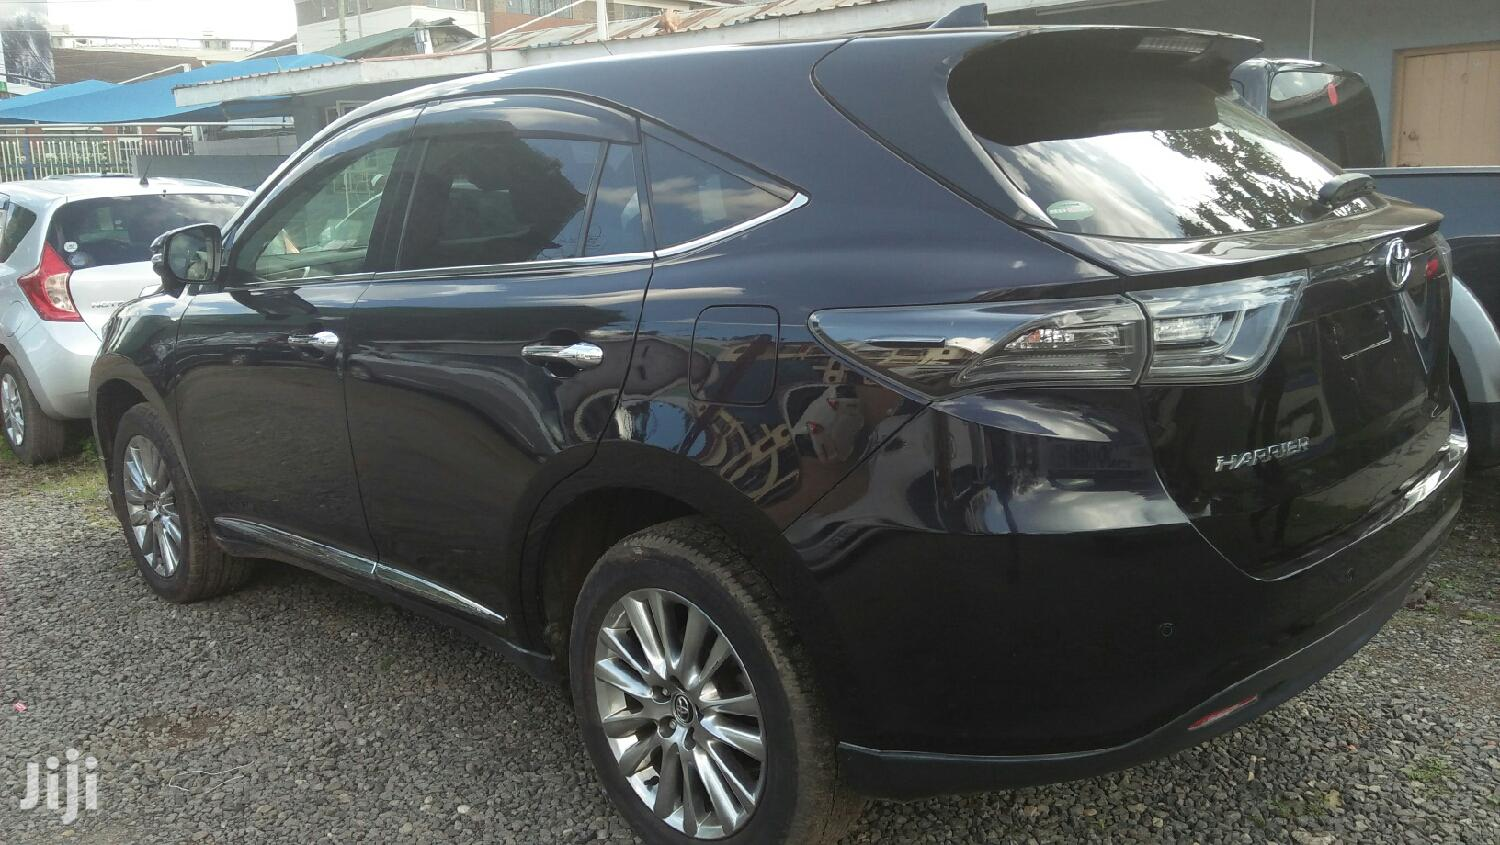 Toyota Harrier 2015 Black | Cars for sale in Nairobi Central, Nairobi, Kenya